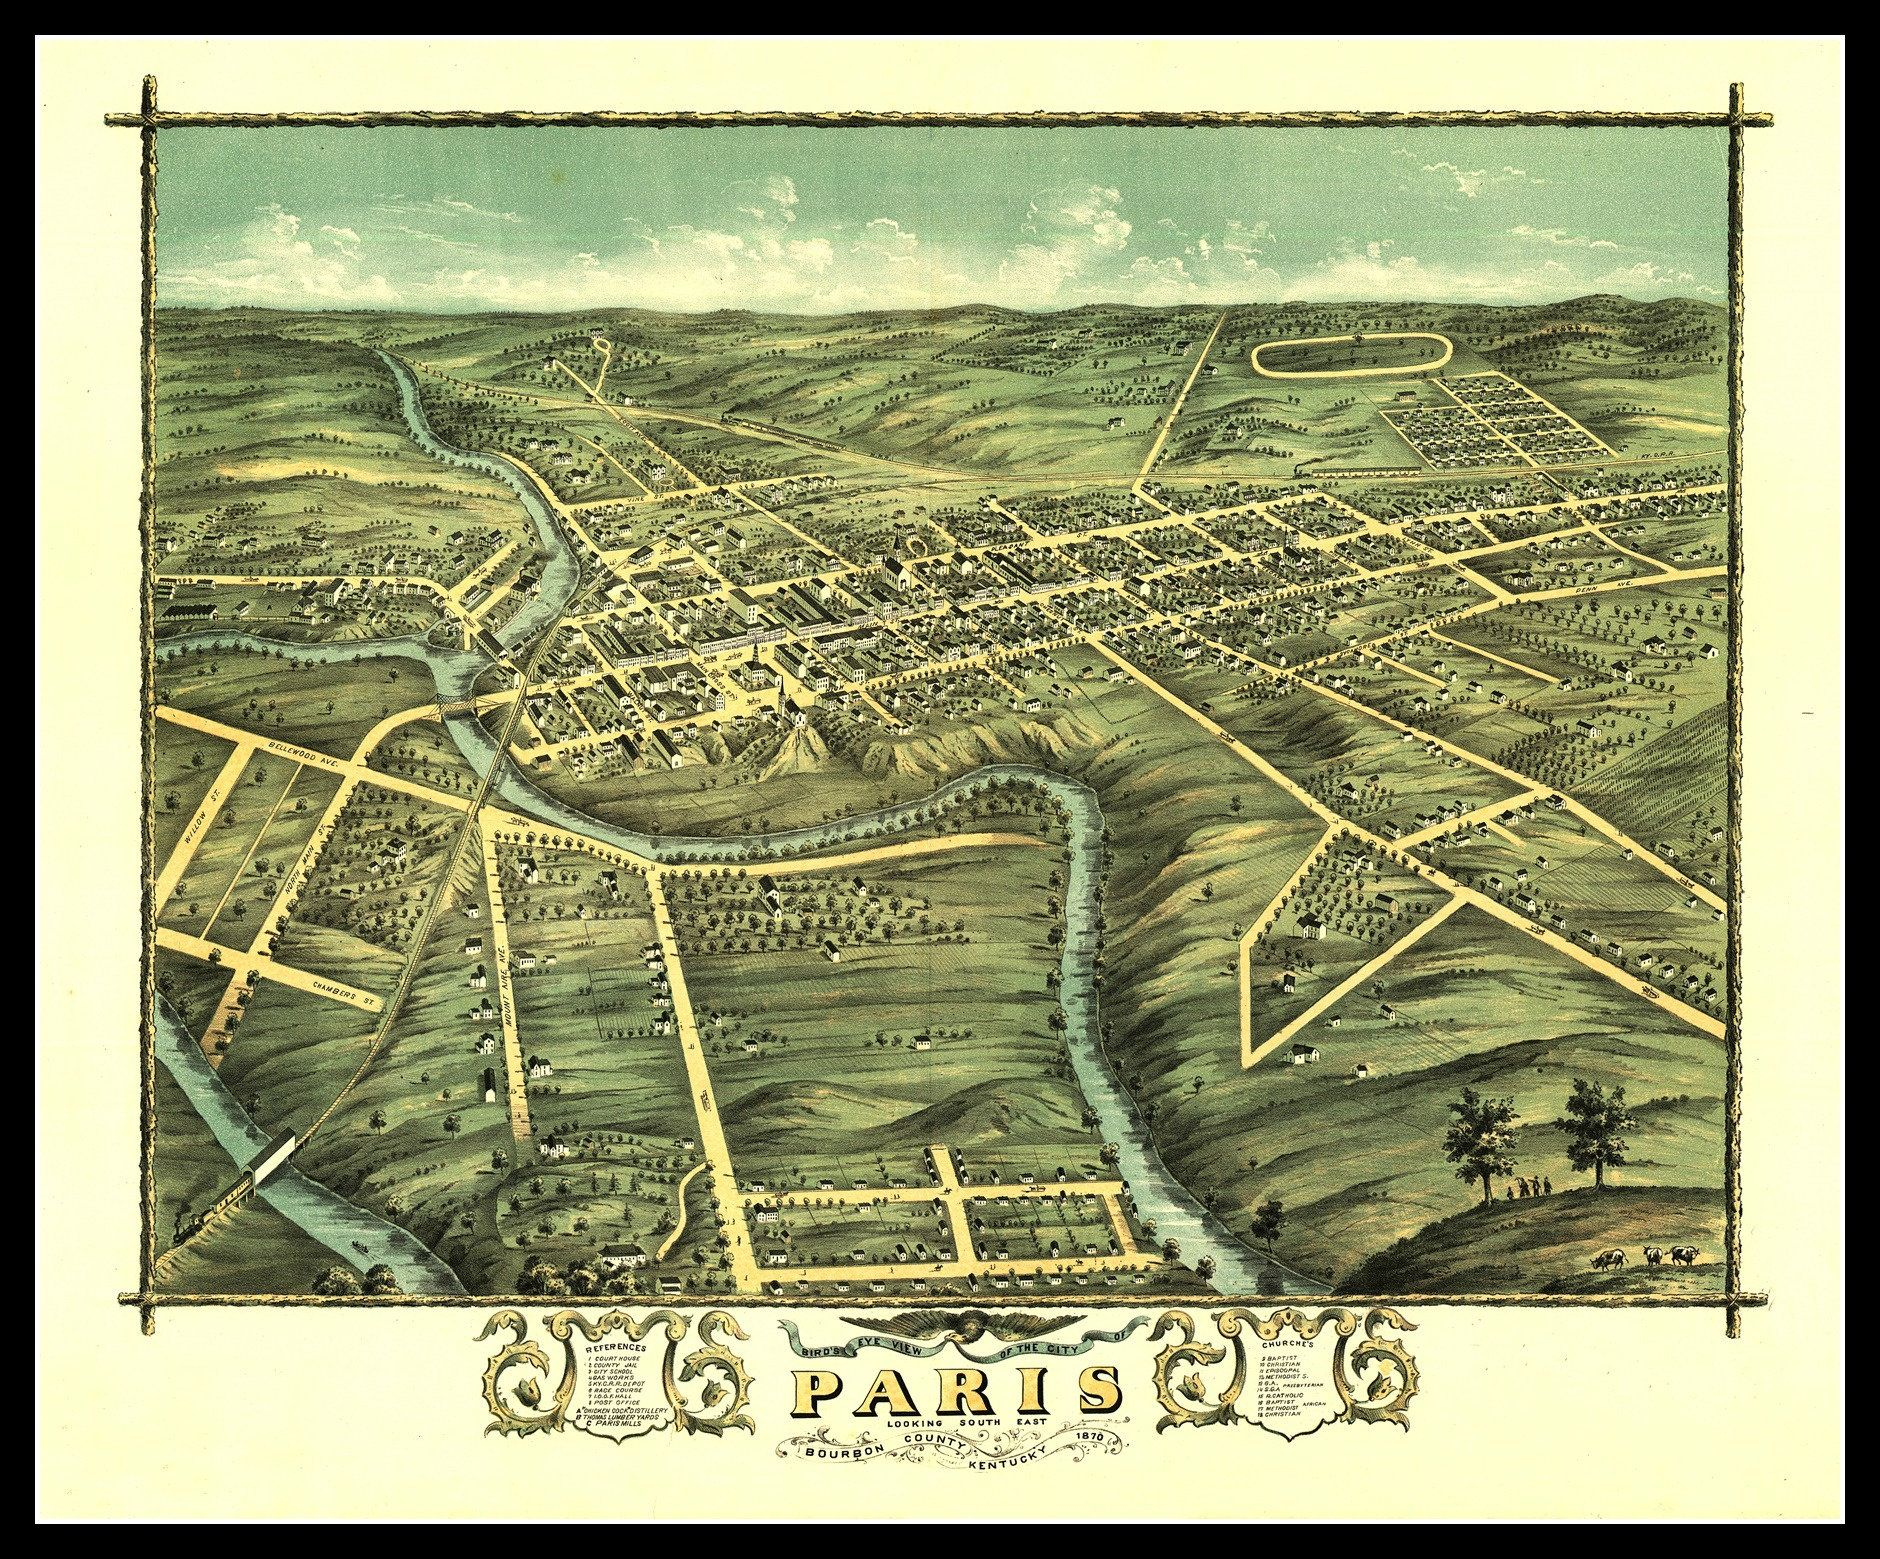 Dayton Ohio; Antique Map; Pictorial 1870 Perspective or Birdseye Map